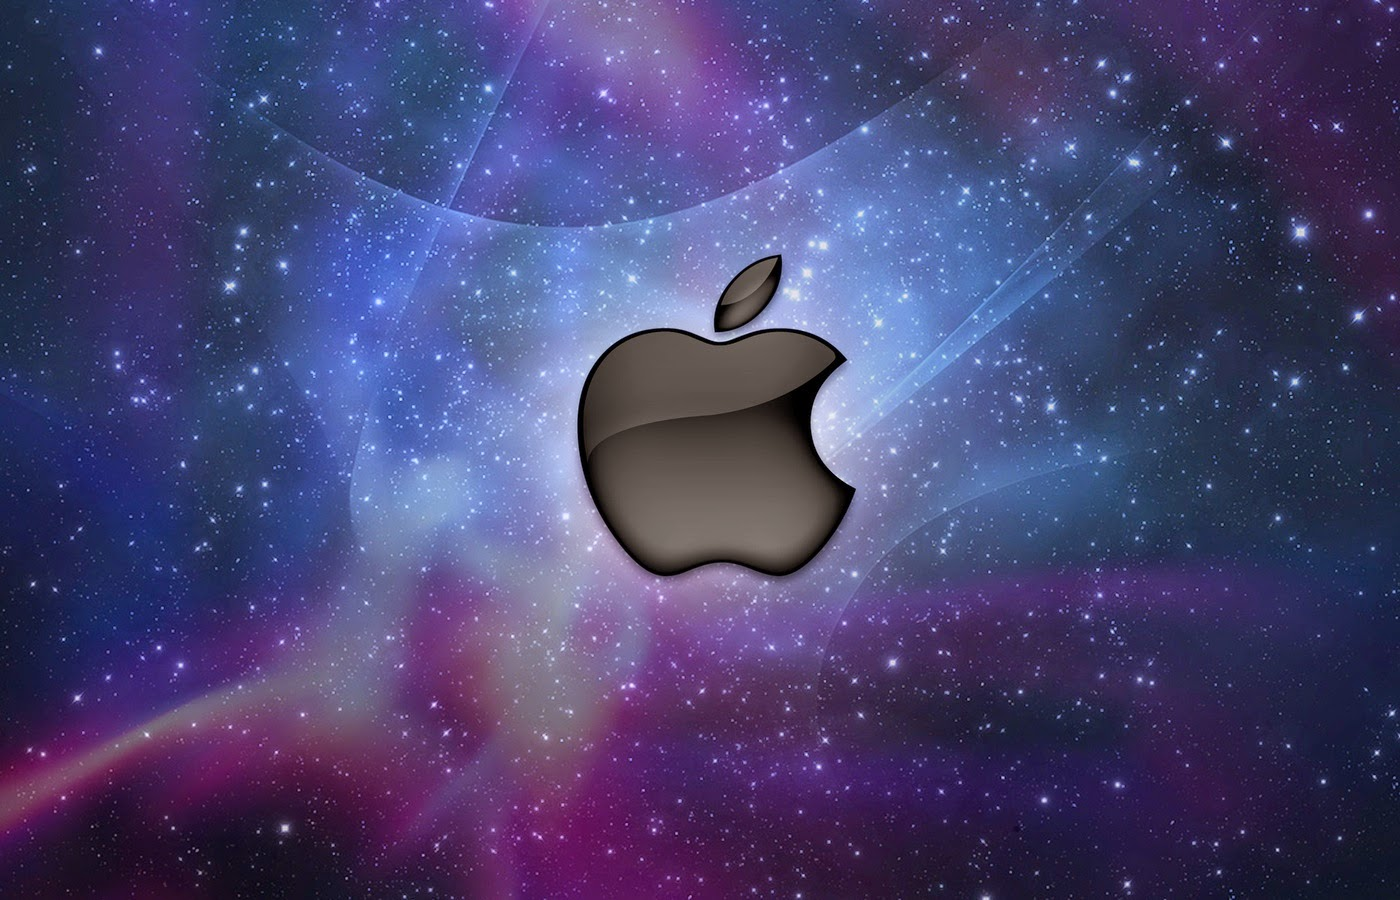 awesome 3d wallpaper: apple macintosh logo hd wallpapers